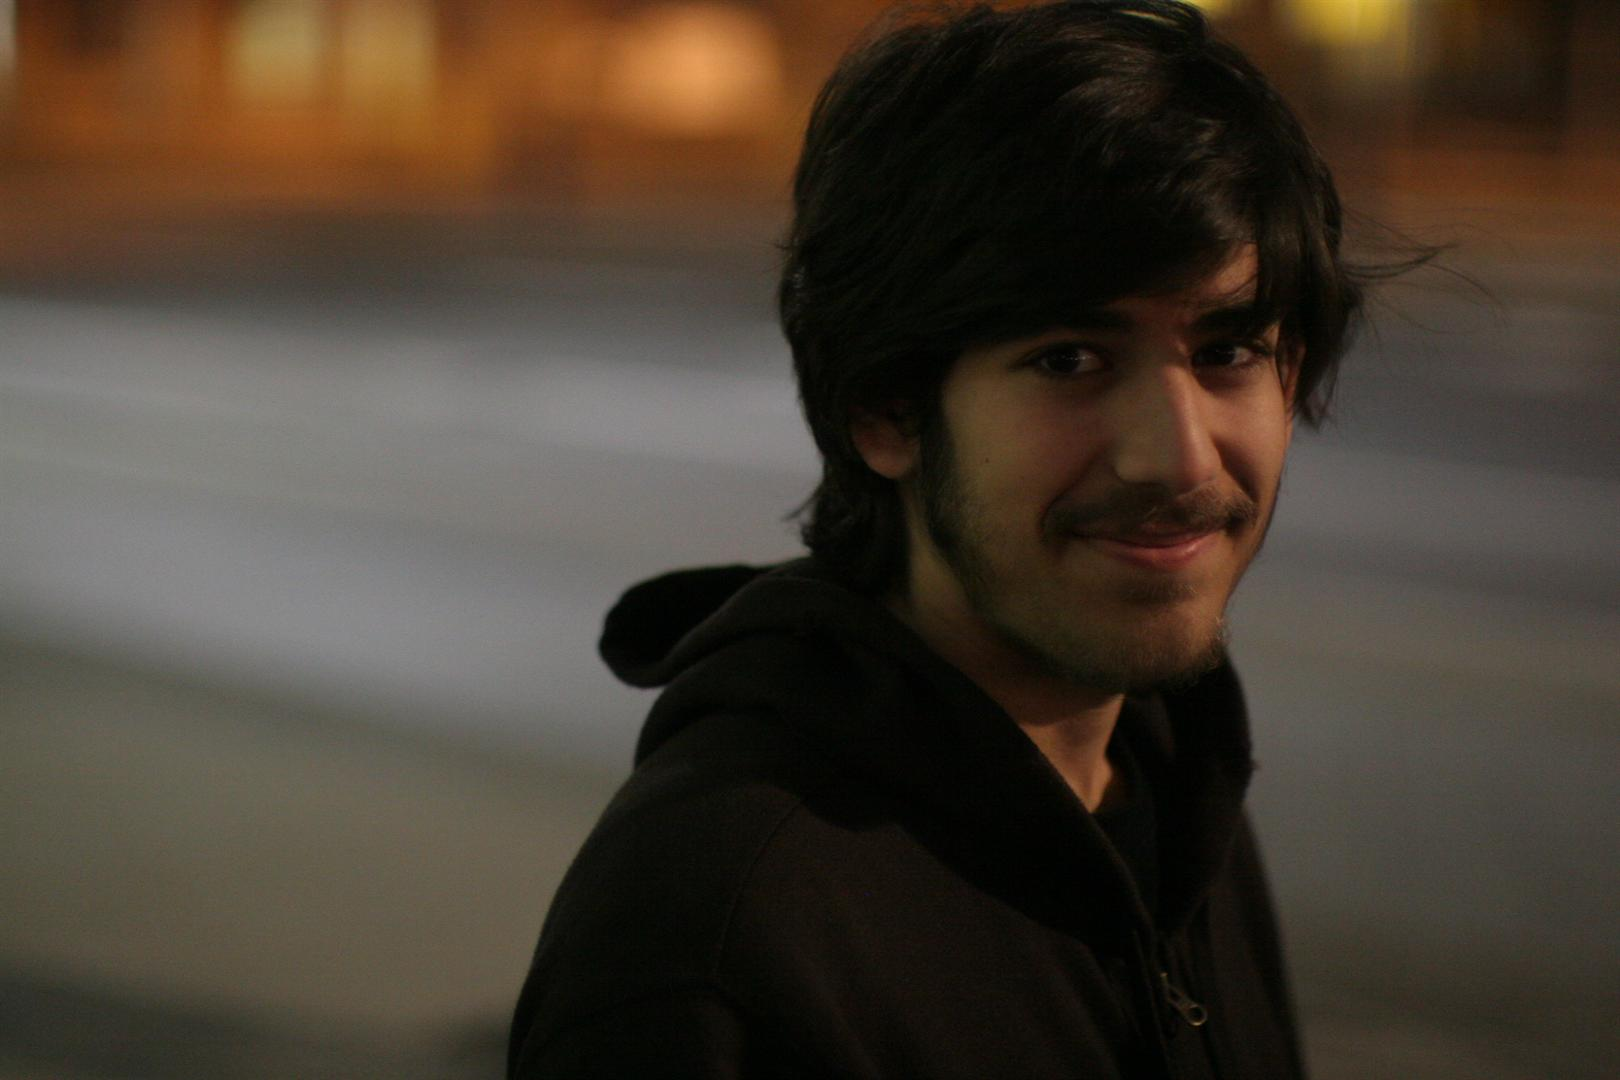 Be curious. Read widely. Try new things. What people call intelligence just boils down to curiosity. - Aaron Swartz